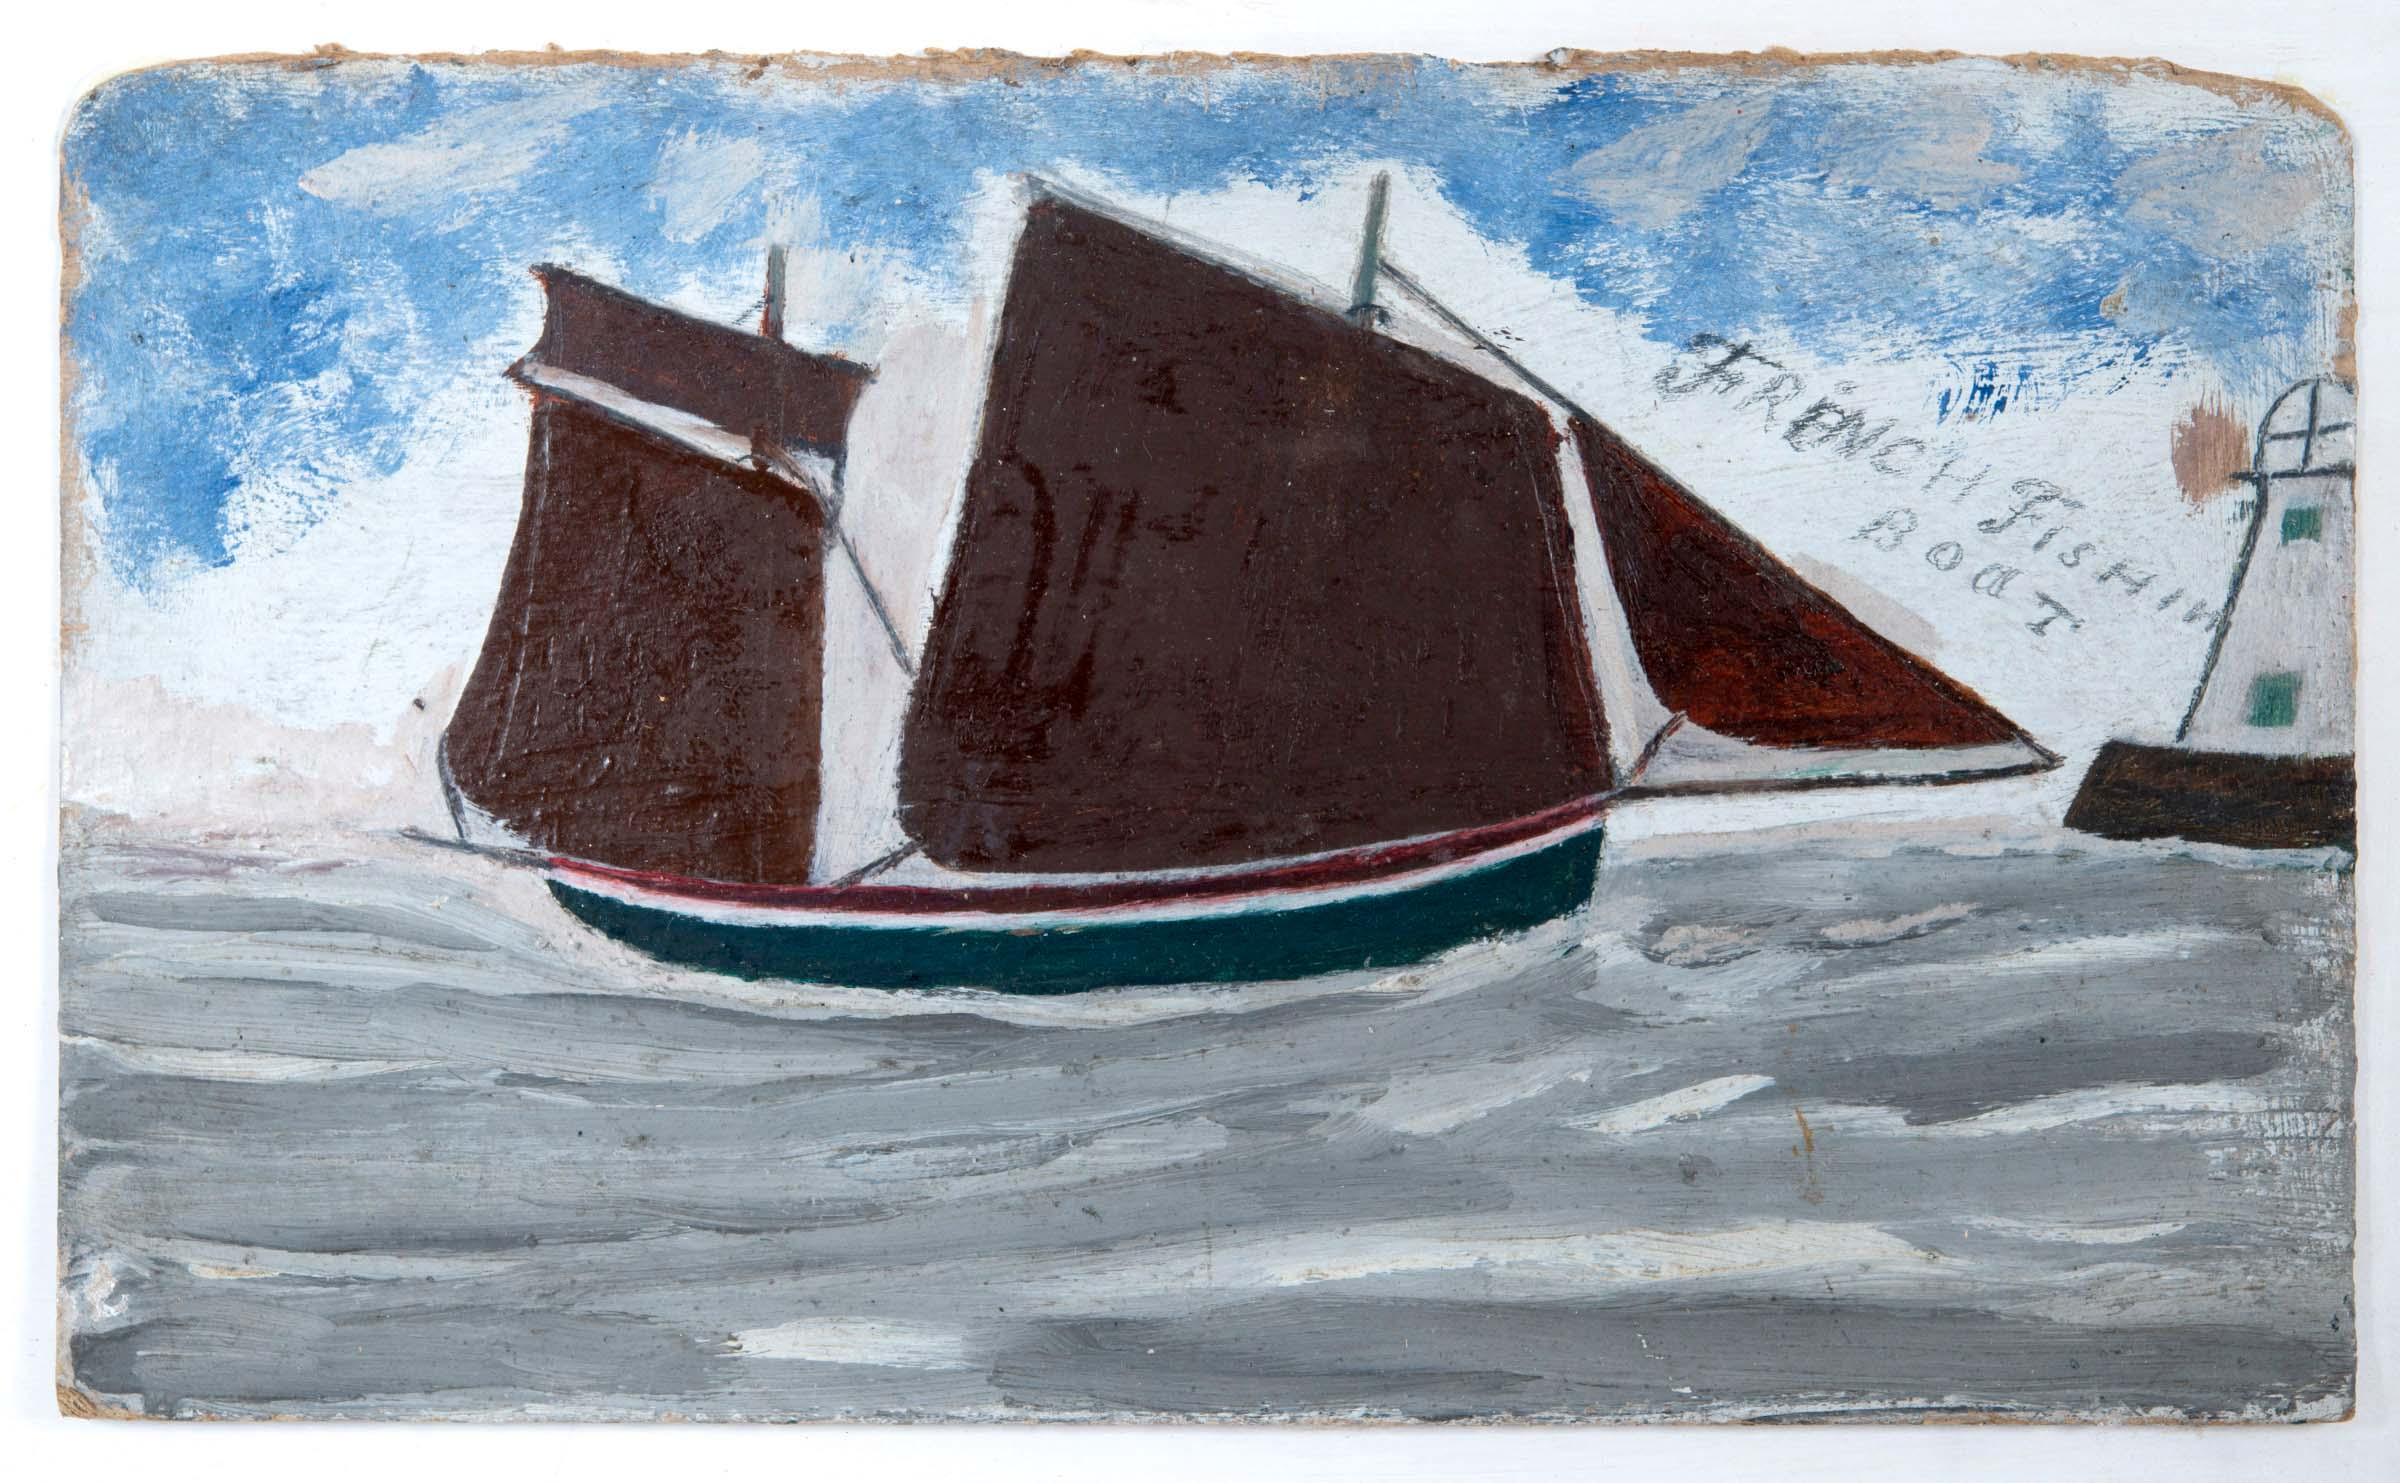 Lot 1963 - ALFRED WALLIS (1855-1942) FRENCH FISHIN BOAT [sic] Inscribed with title, oil on card 17.5 x 29.5cm